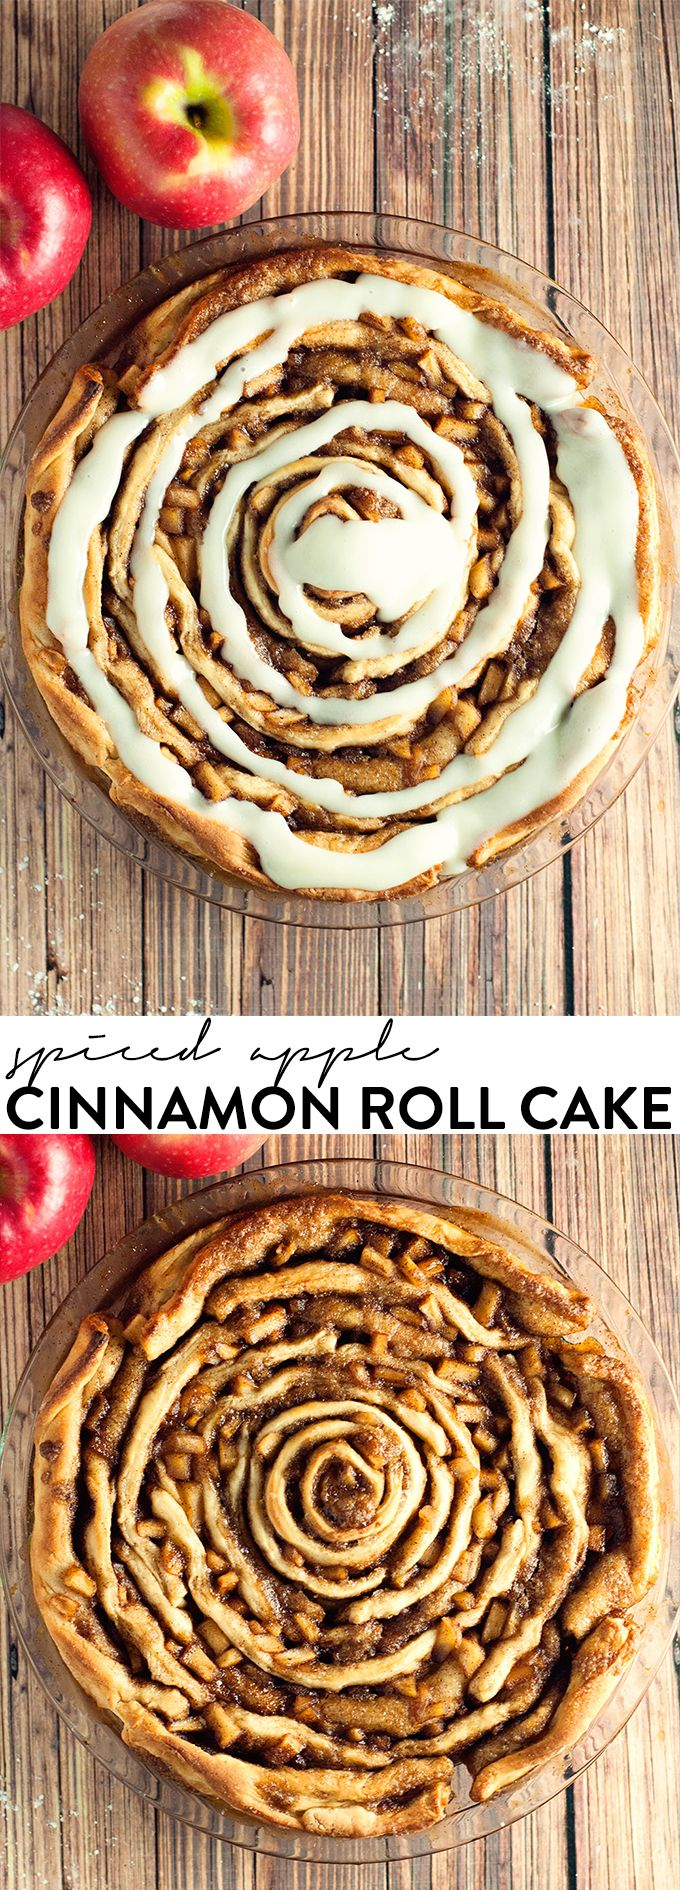 This spiced apple cinnamon roll cake blows boring breakfast away with amazing flavor! asimplepantry.com